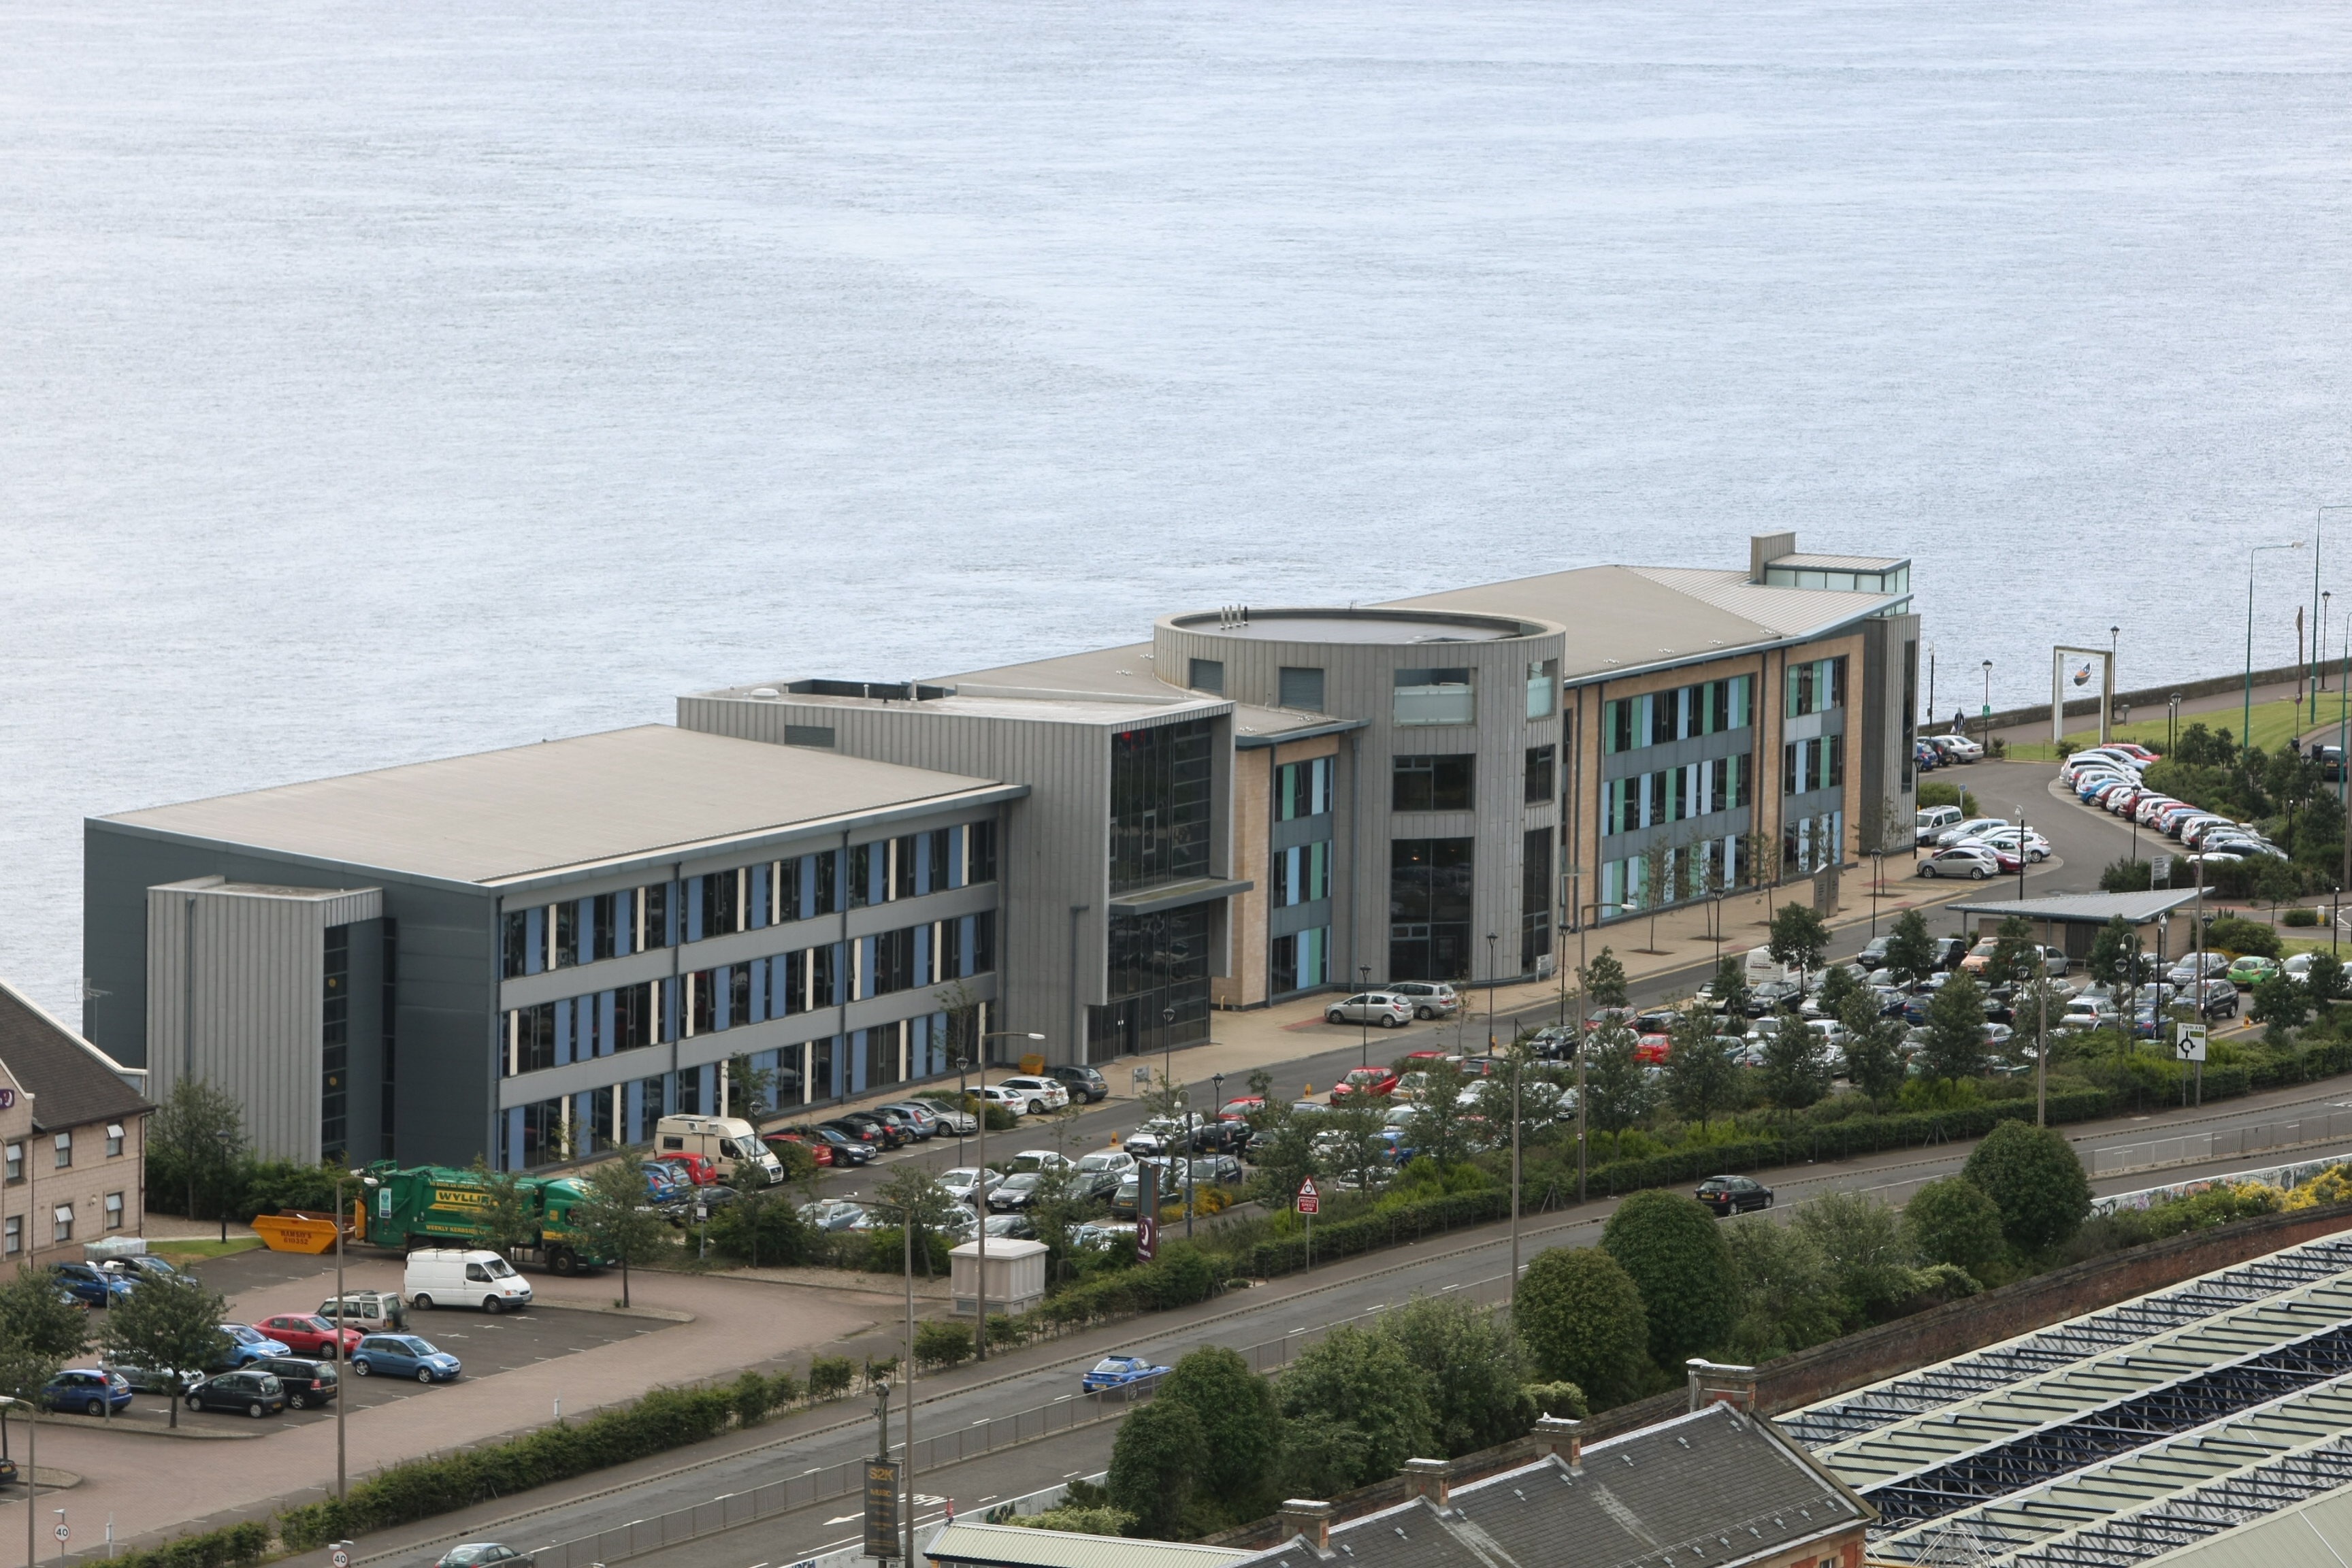 The SSSC is based at Compass House, Dundee